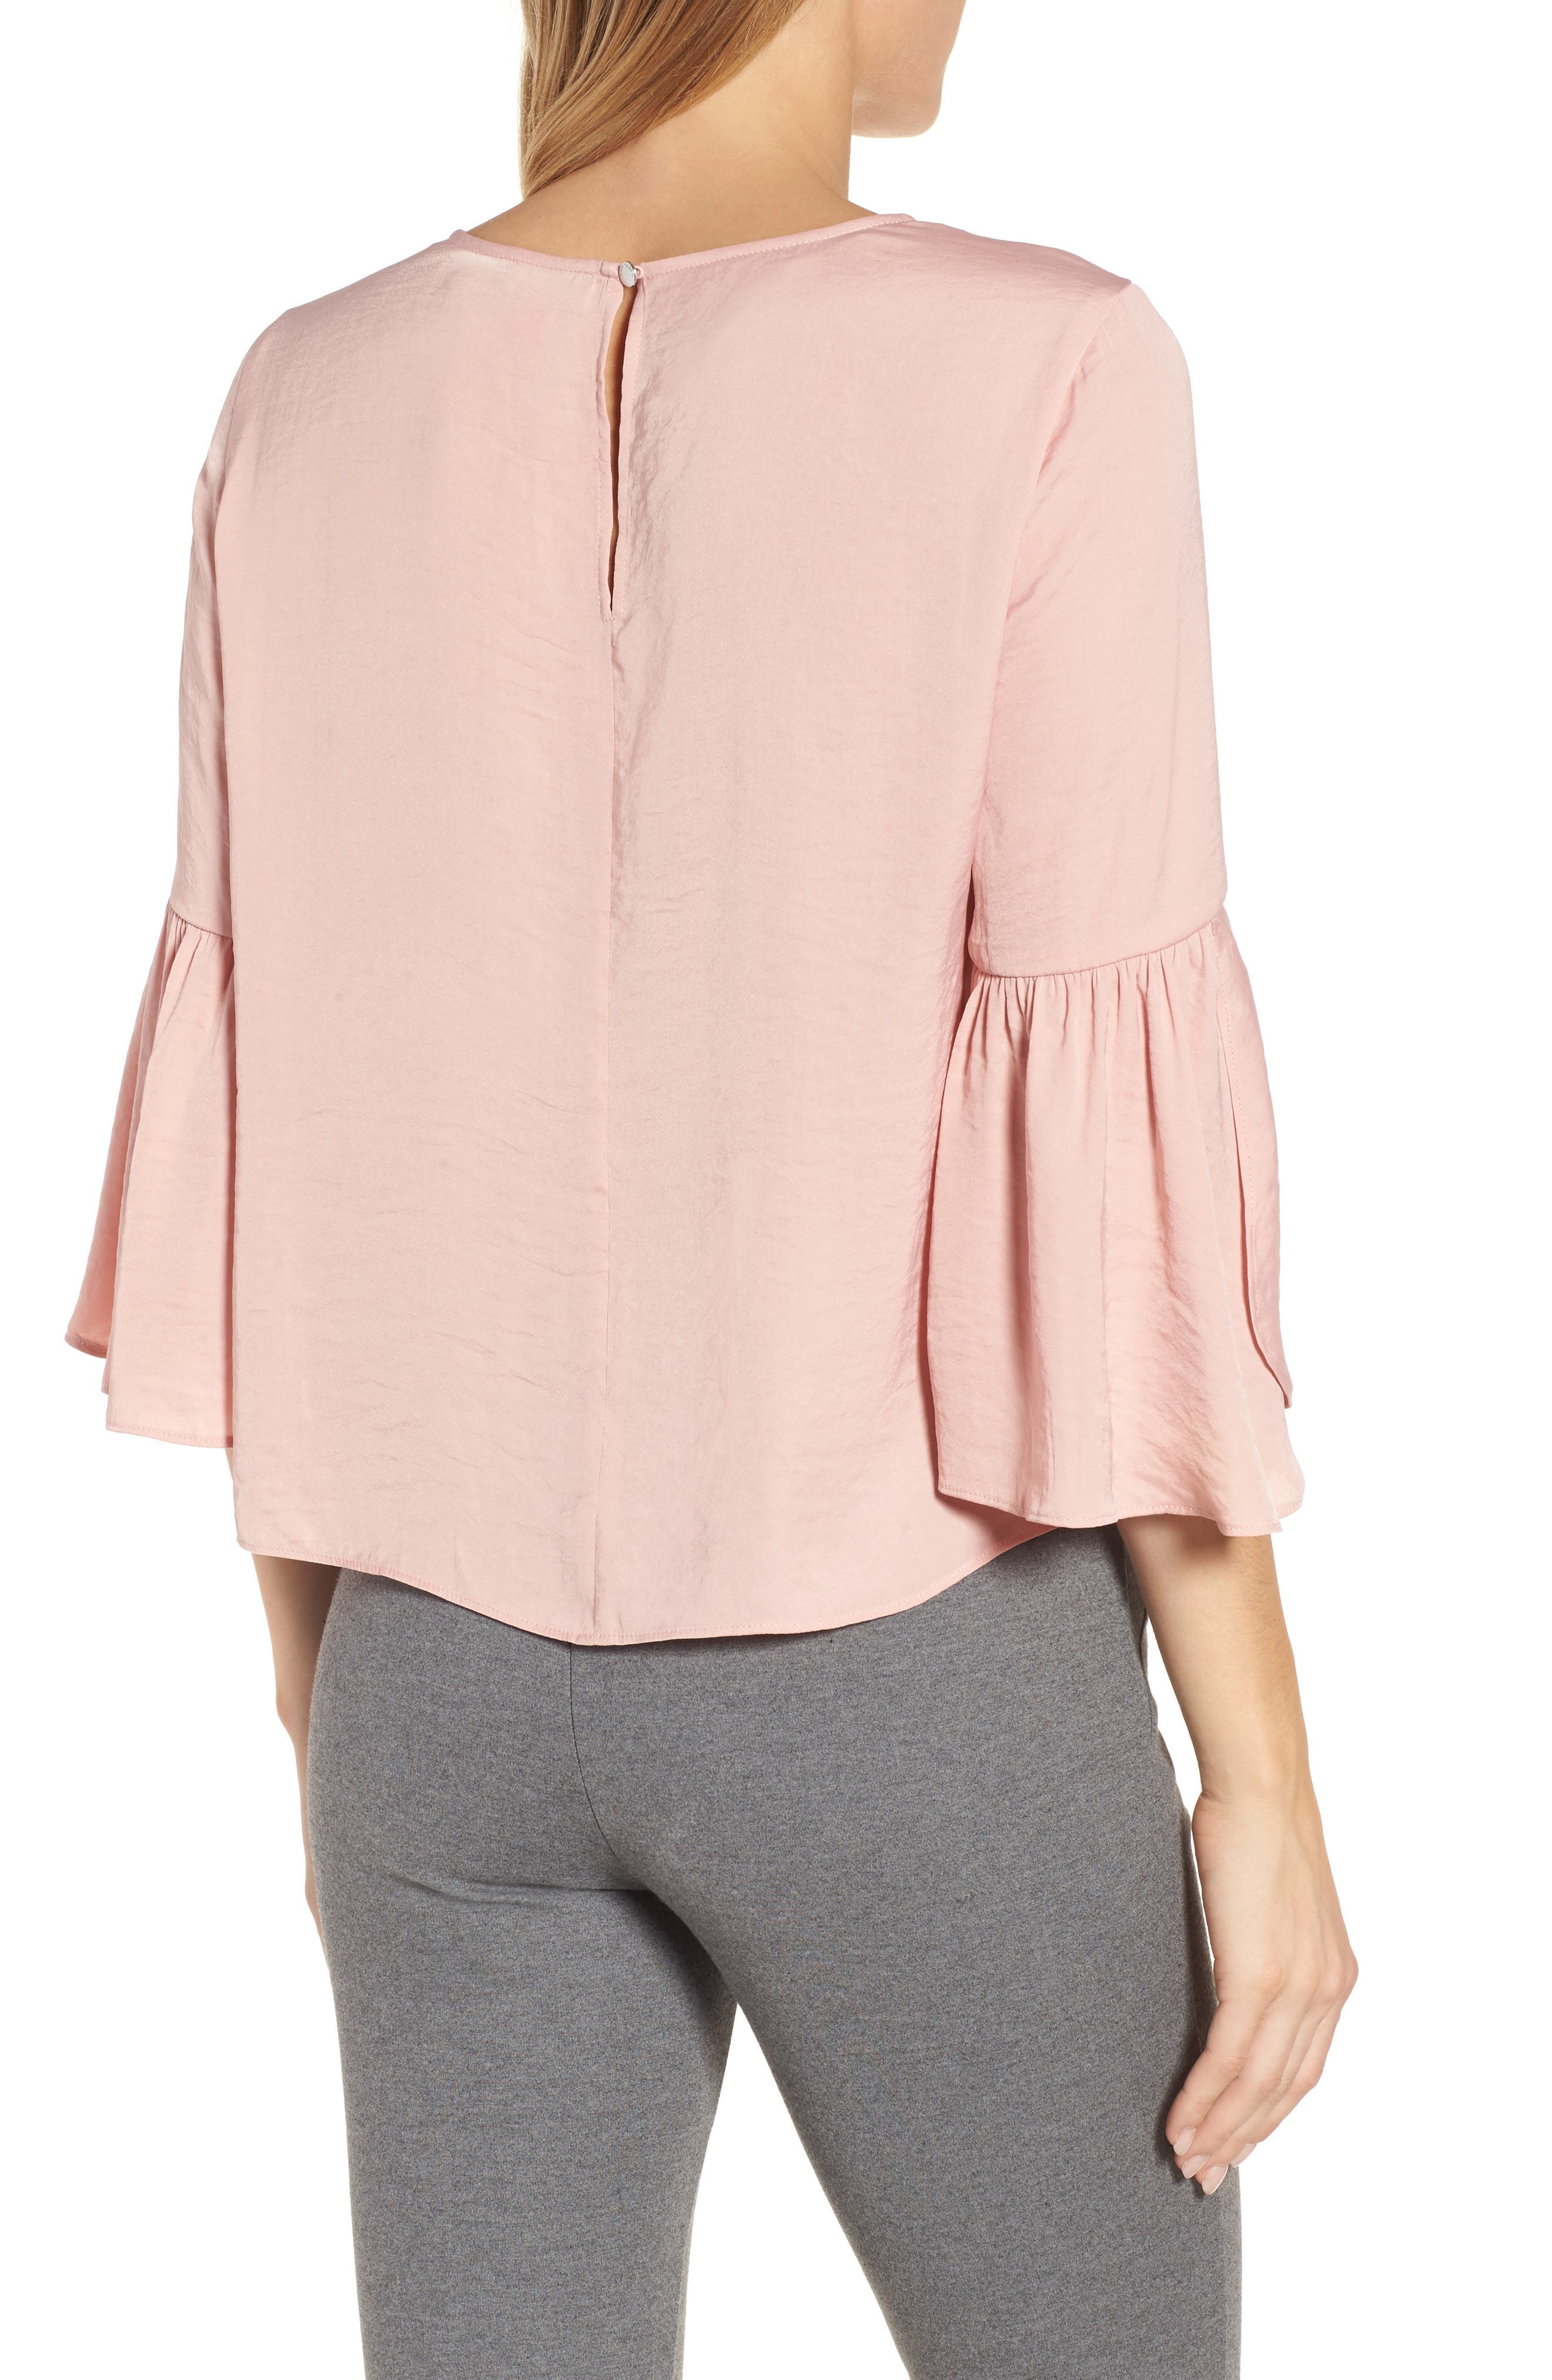 Alternate Image 2  - Vince Camuto Hammer Satin Bell Sleeve Blouse